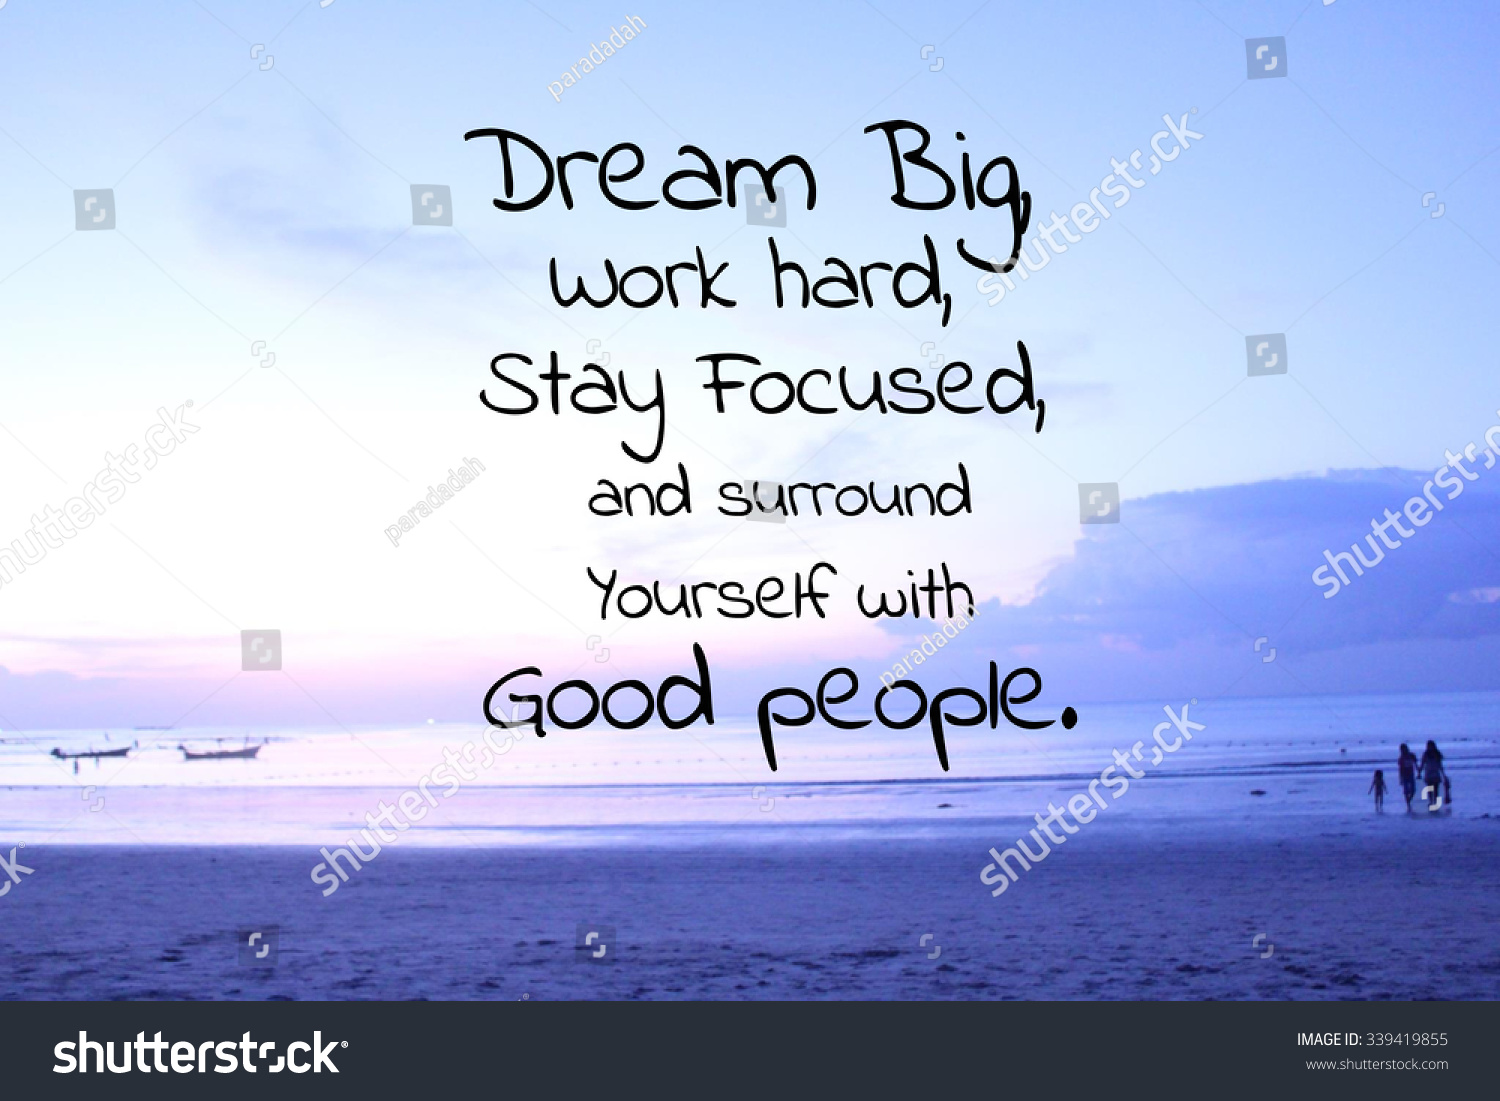 Parks And Recreation Wallpaper Quotes Inspirational Quote On Blurred Beach Background Stock